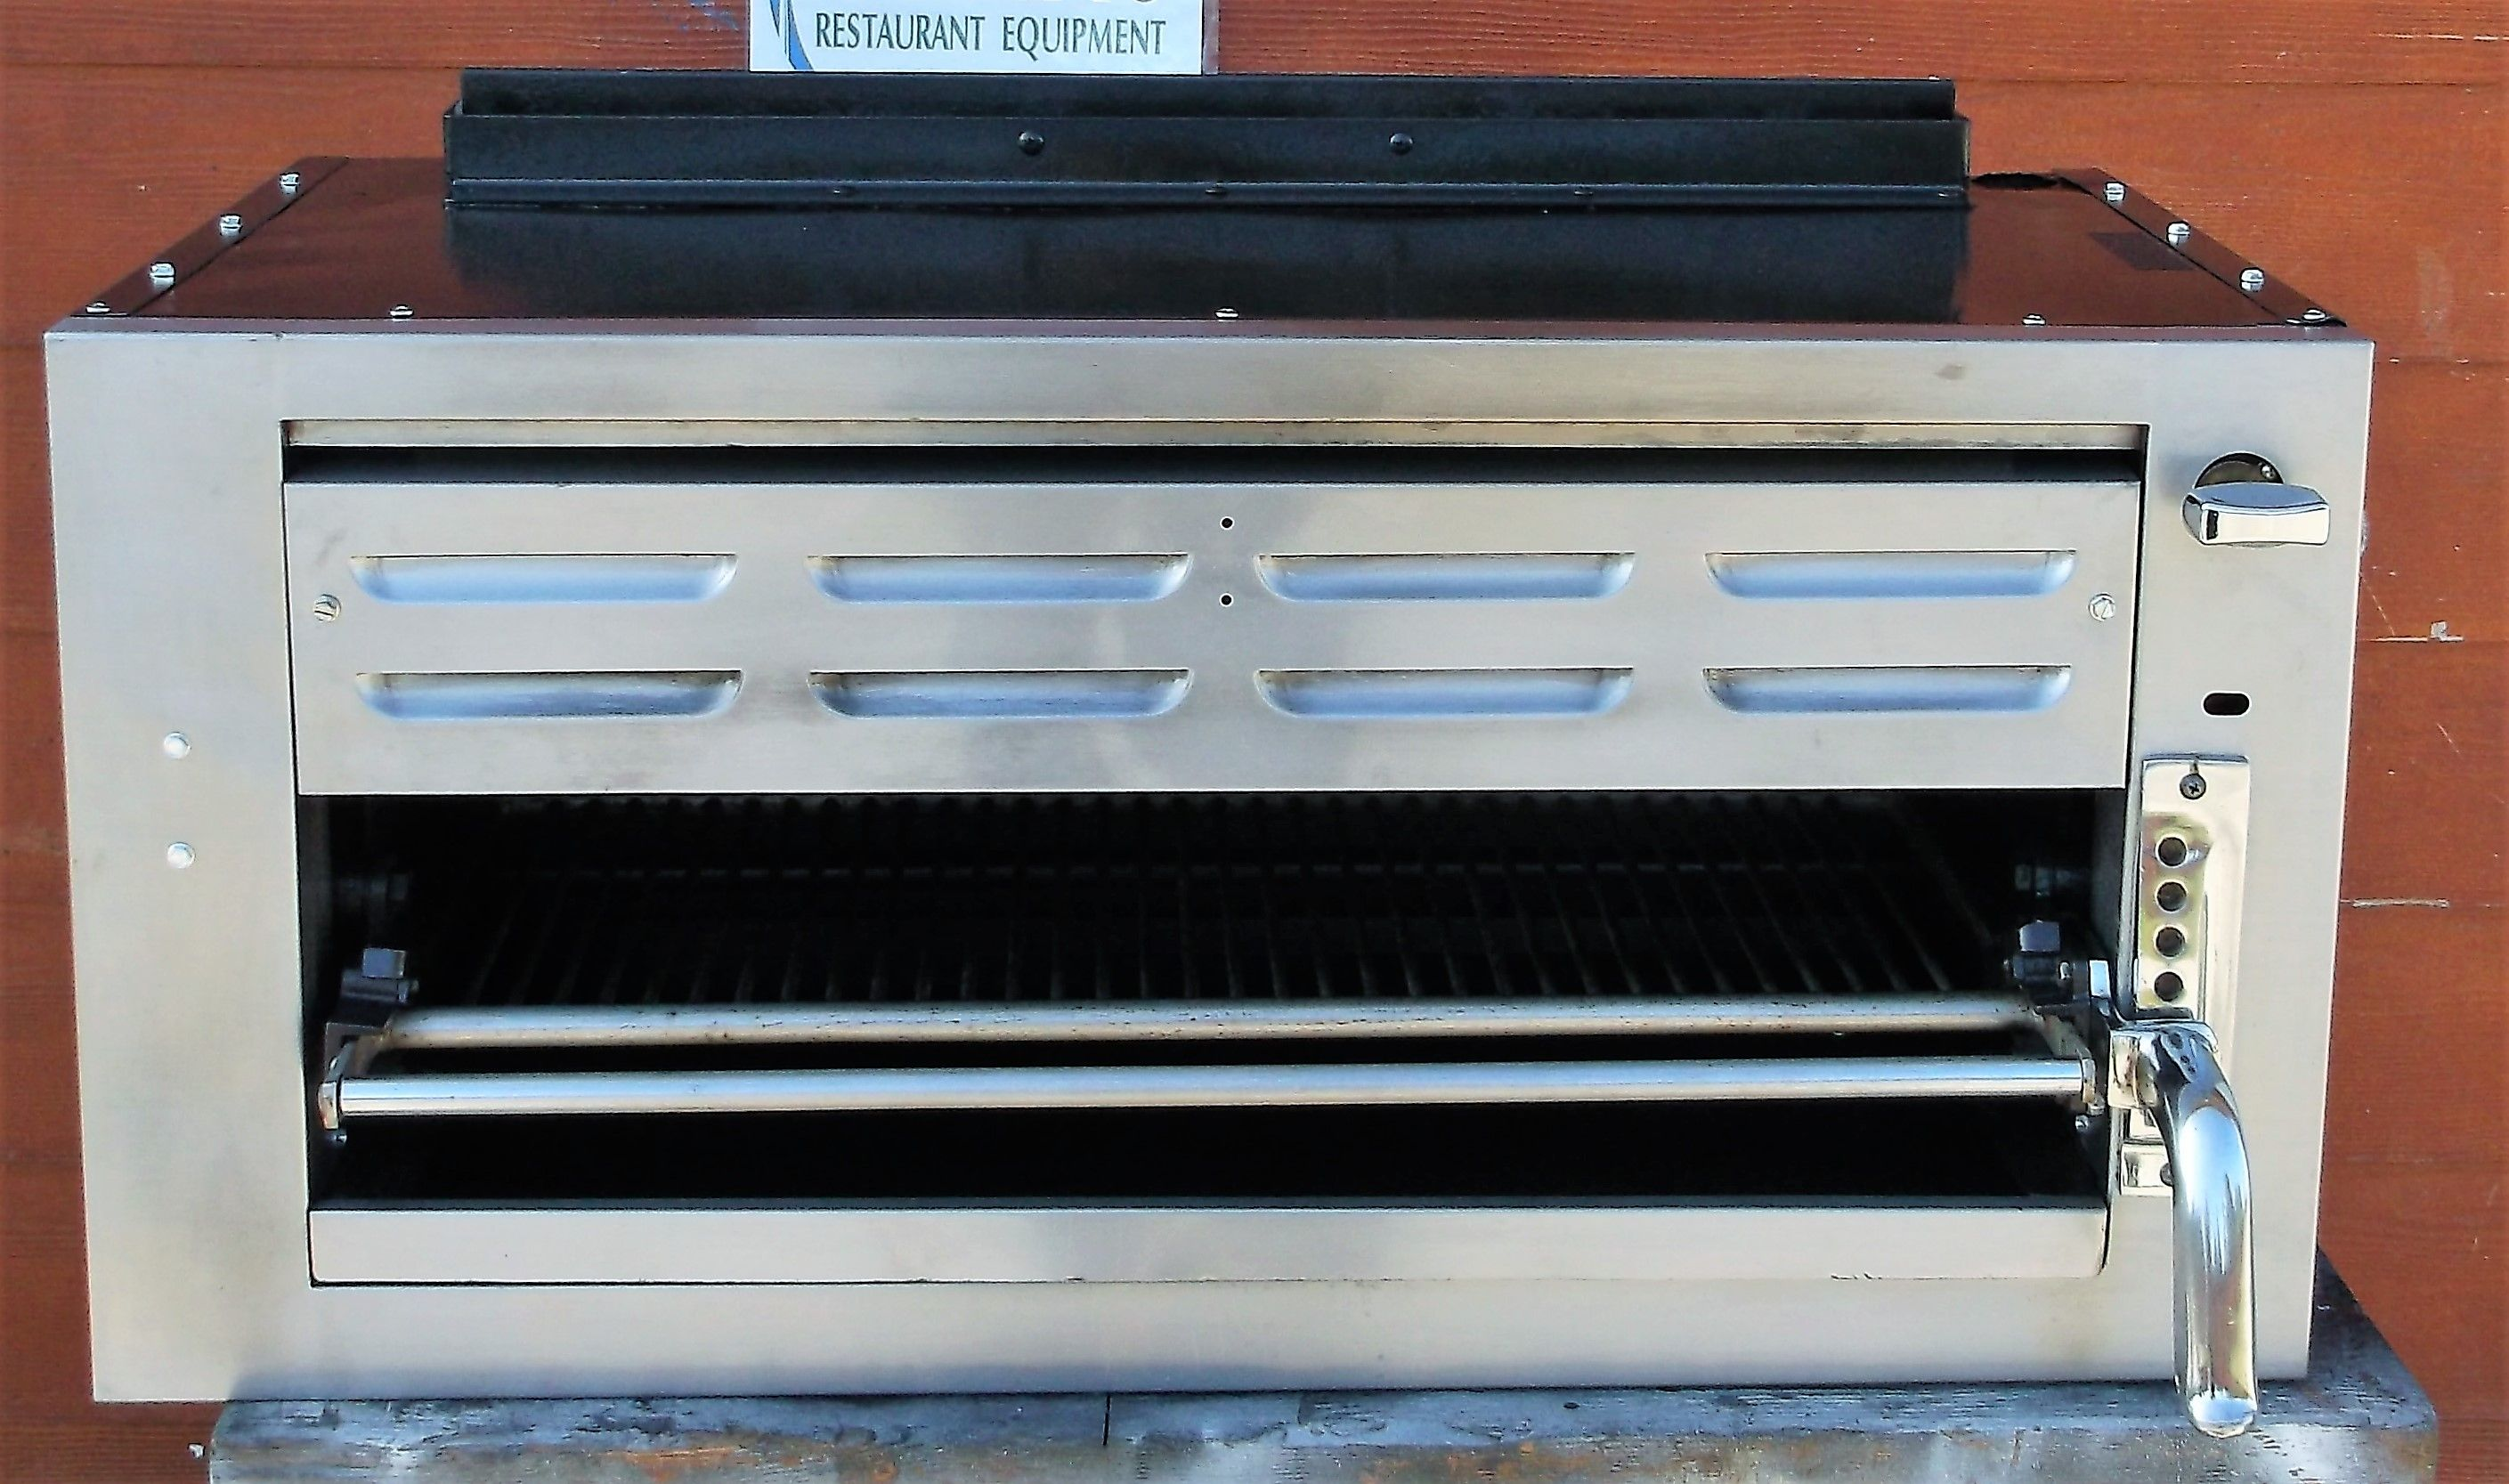 $650.00 Merco Heated Cnt/top Display Case #1220-2P Reconditioned ...